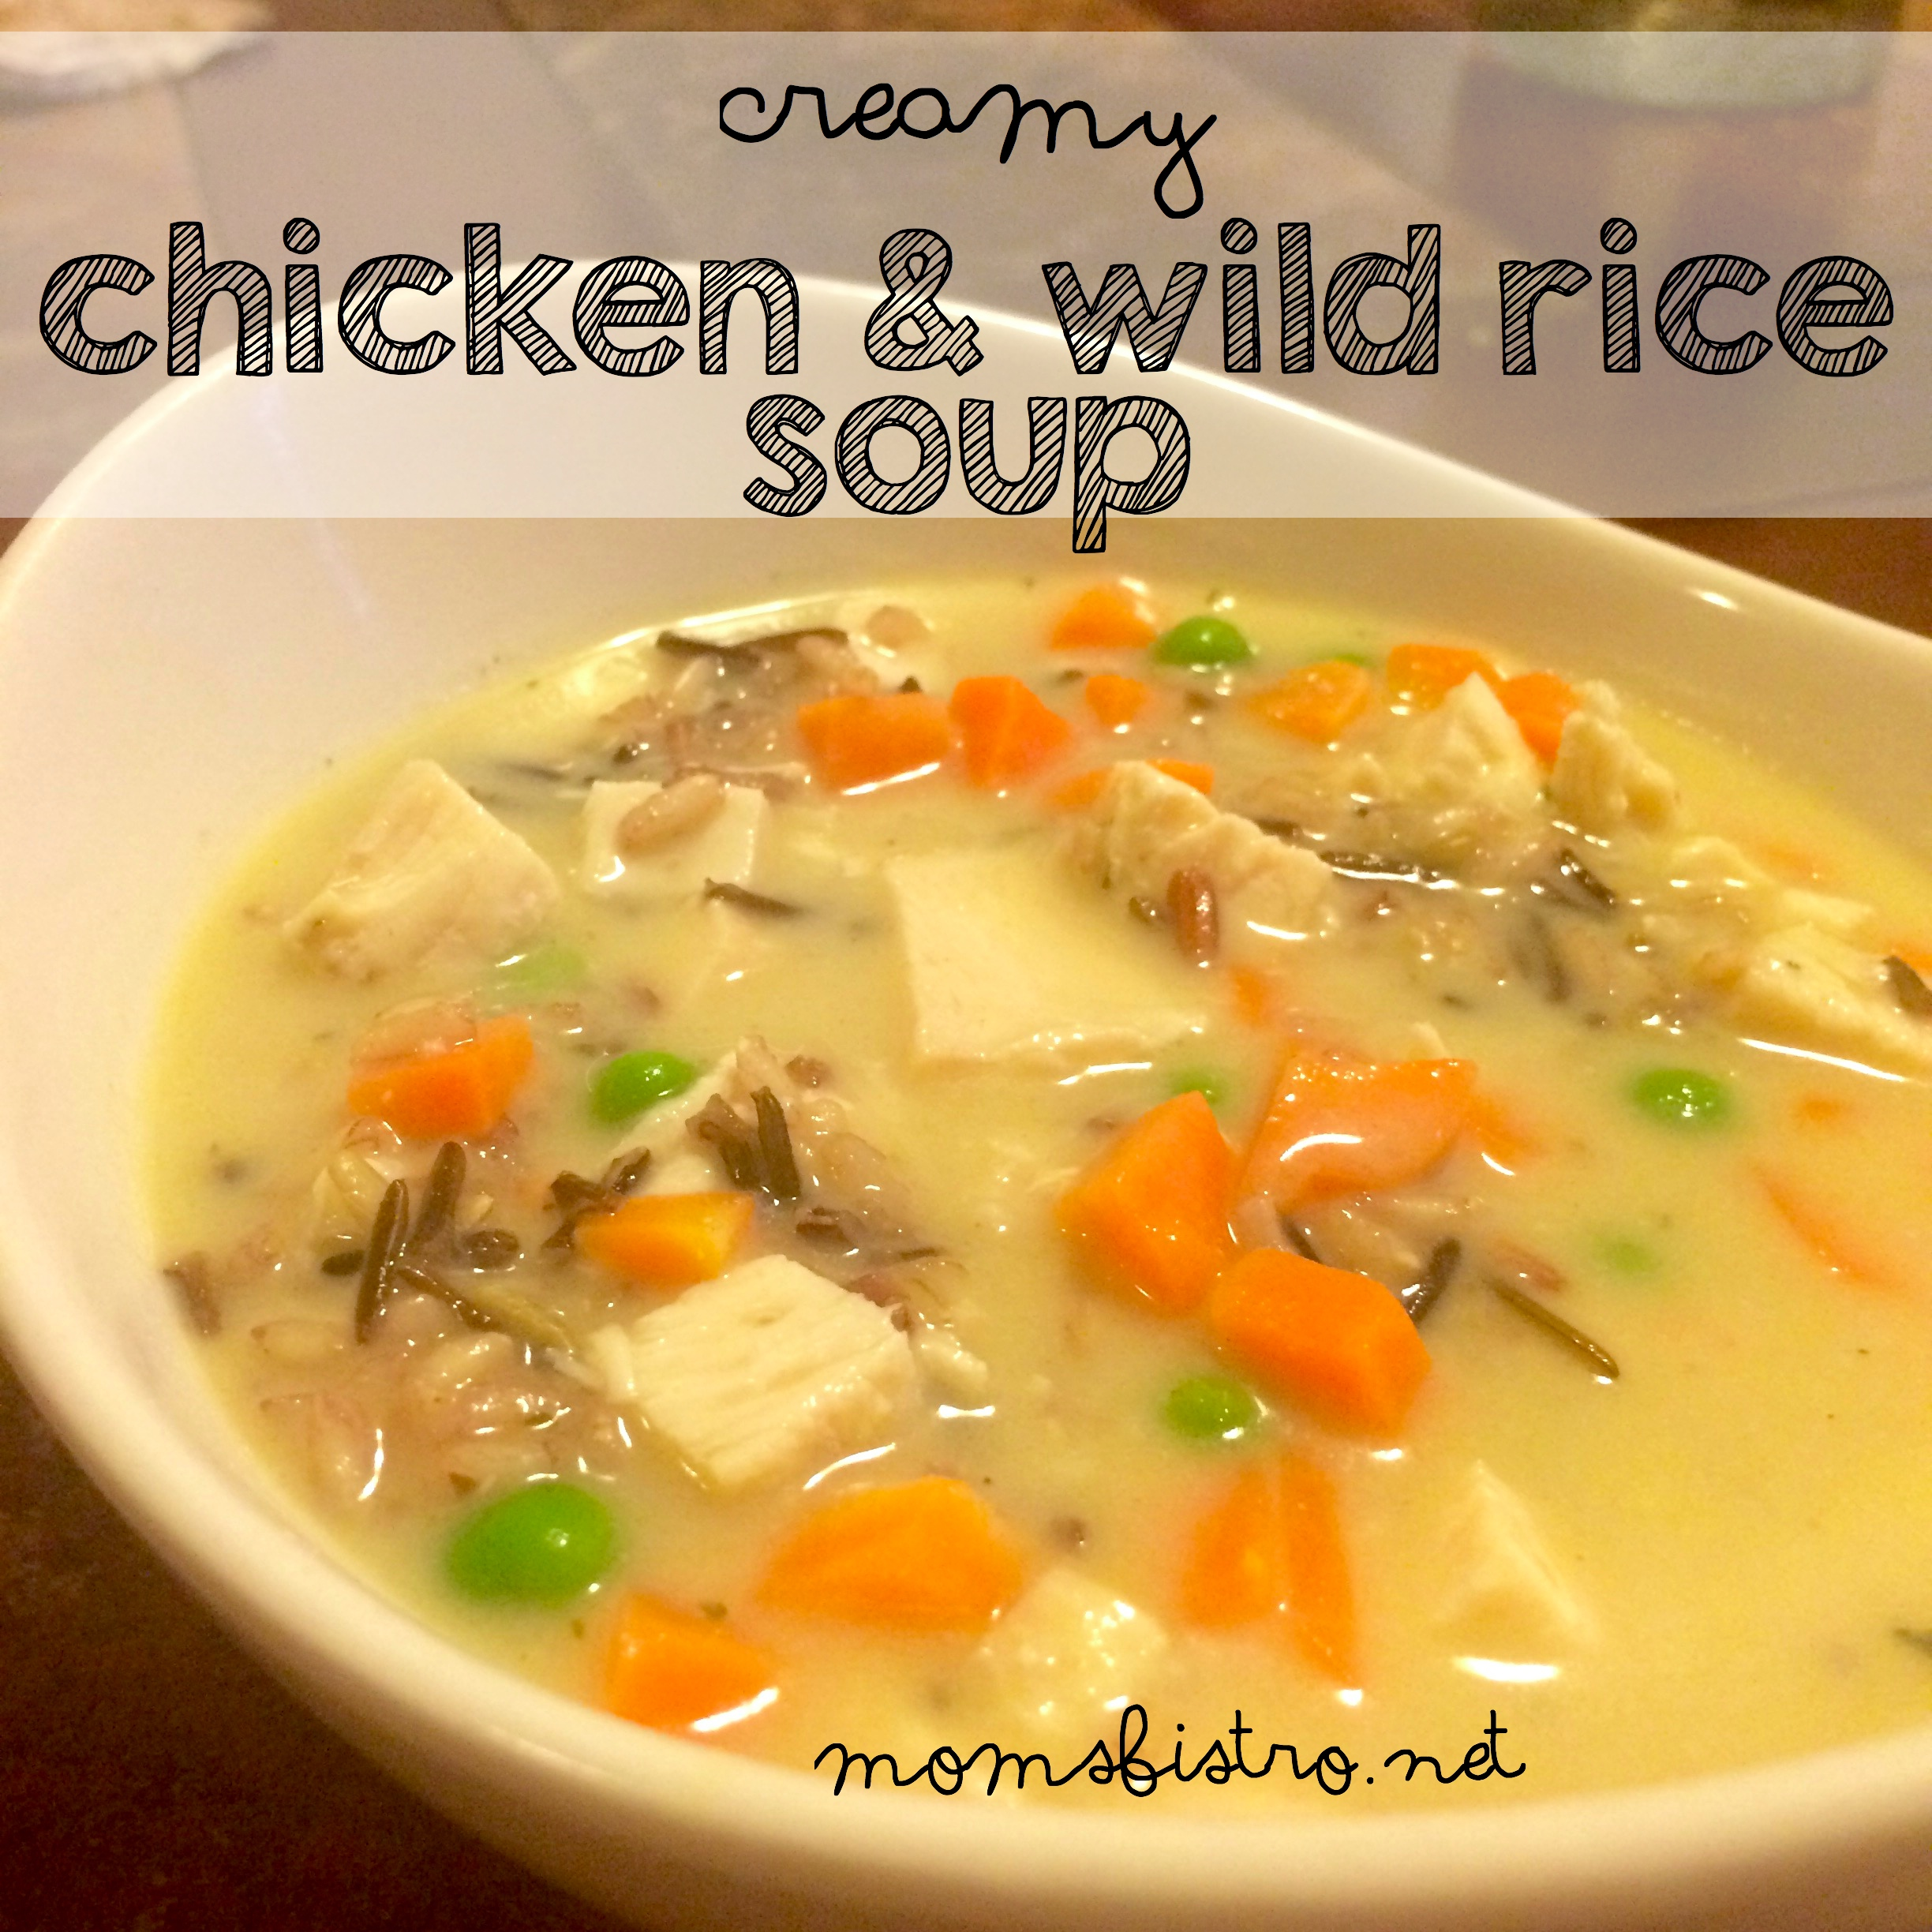 creamy chicken and wild rice soup recipe homemade cream of chicken homemade chicken strock recipe moms bistro